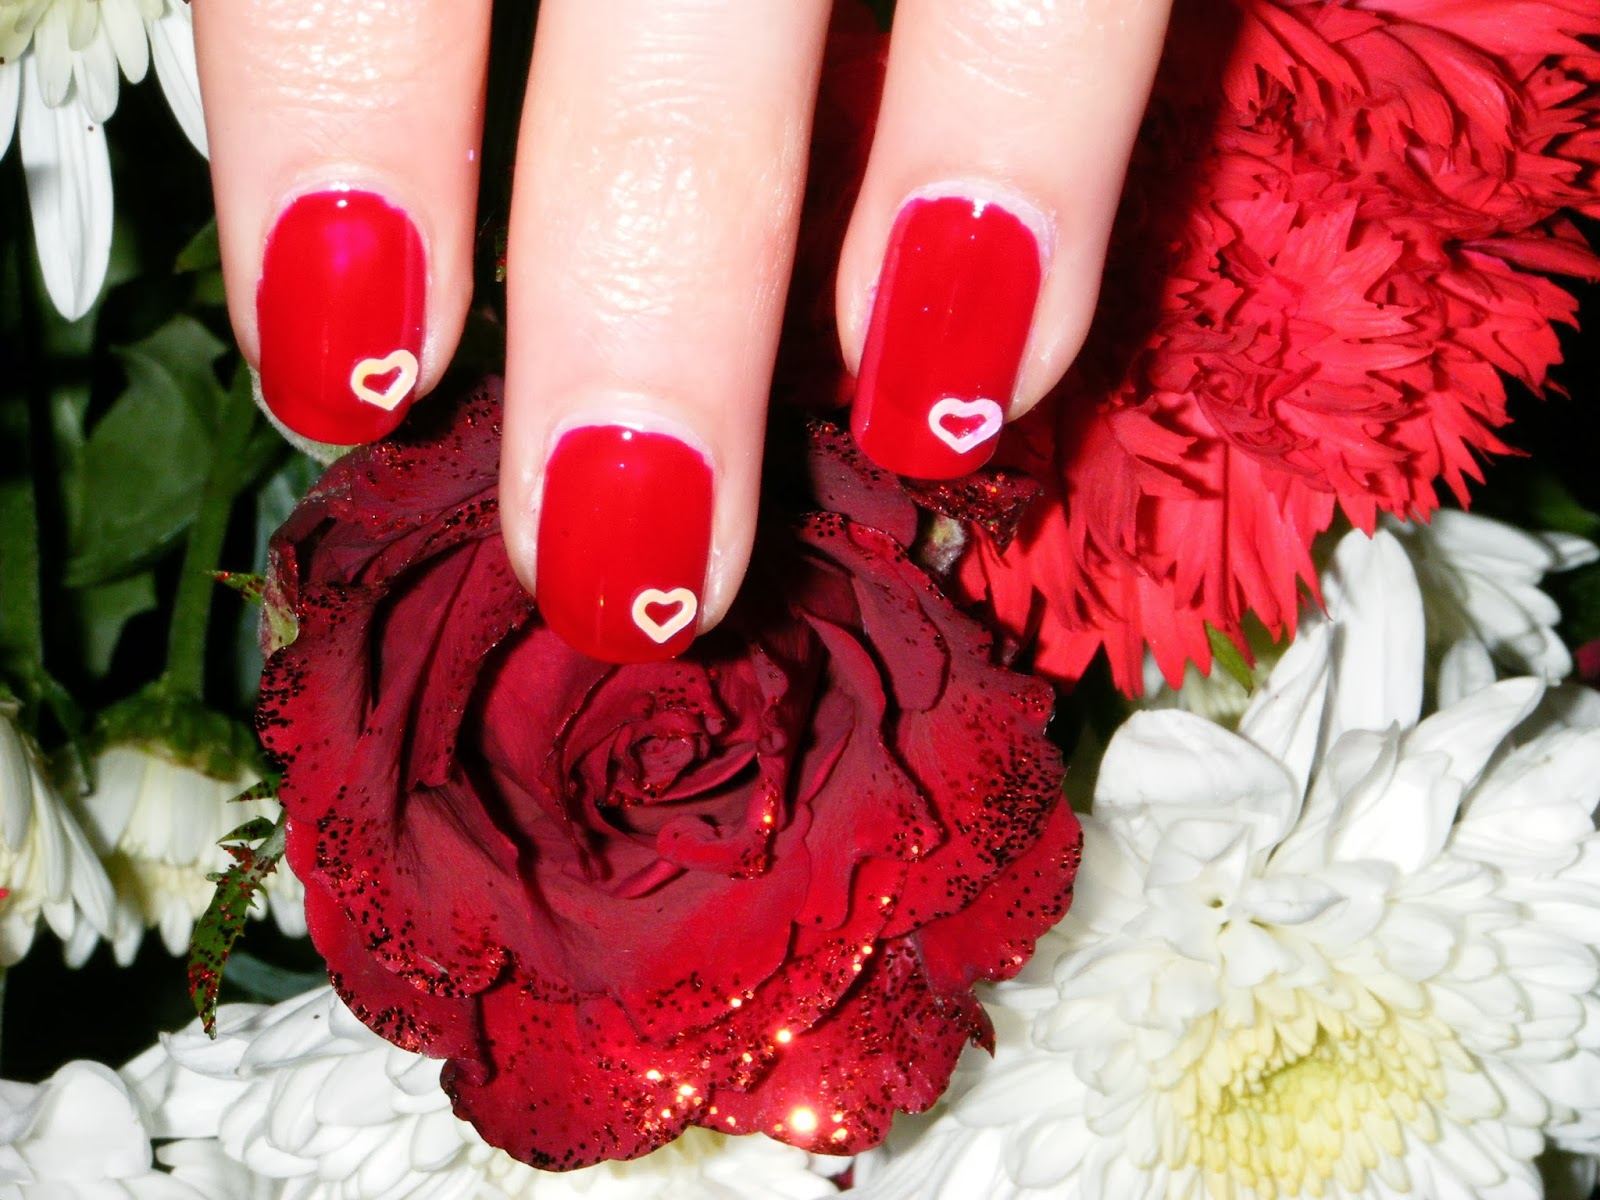 GOT-valentines-red-heart-flowers-nails